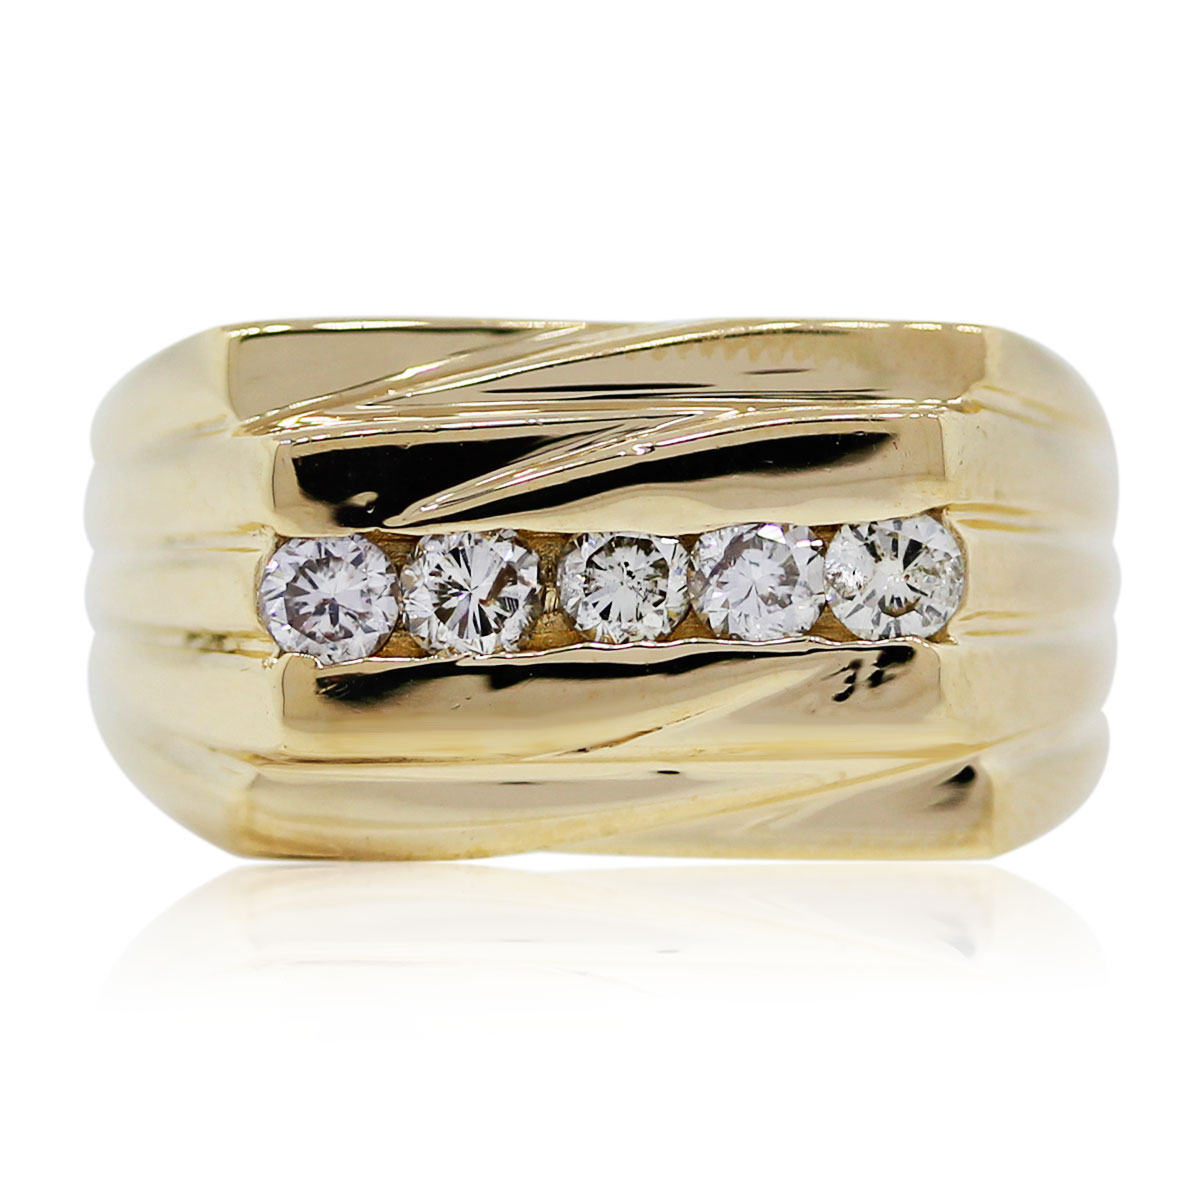 You are viewing this Yellow Gold Diamond Men's Ring!